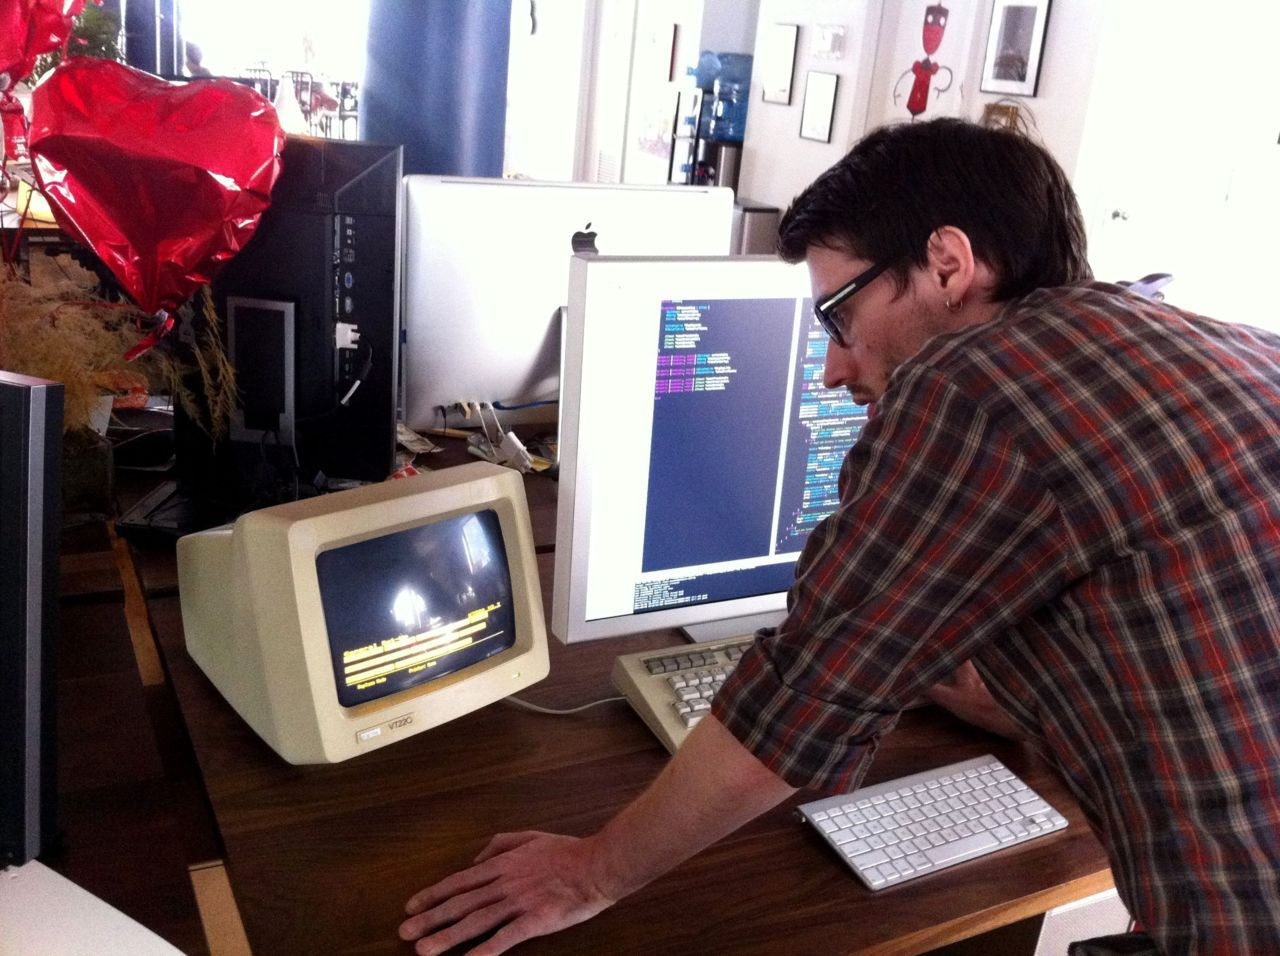 buzz:   Justin is now using a vintage DEC VT220 serial terminal as an outboard terminal window for his Mac. Respect.   What an awesome nerd.